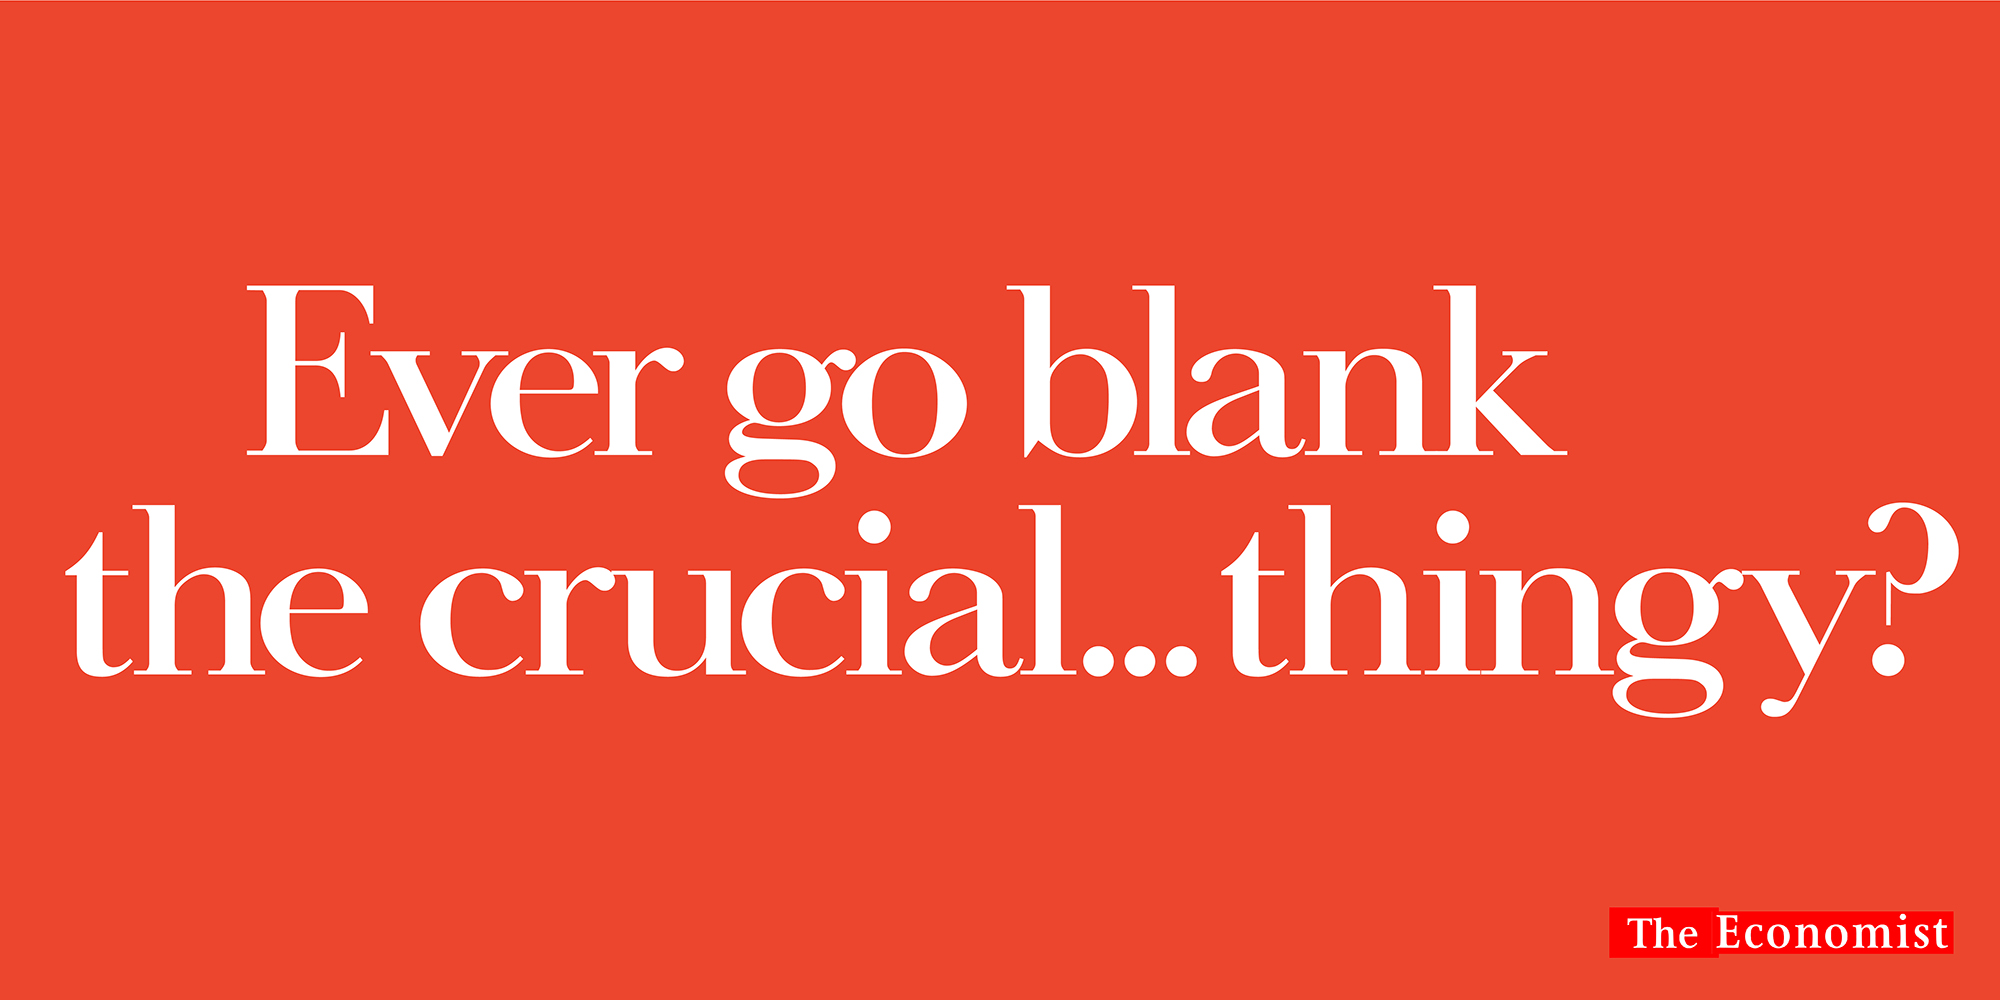 'Ever Go Blank' The Economist, Dave Dye, AMV_BBDO